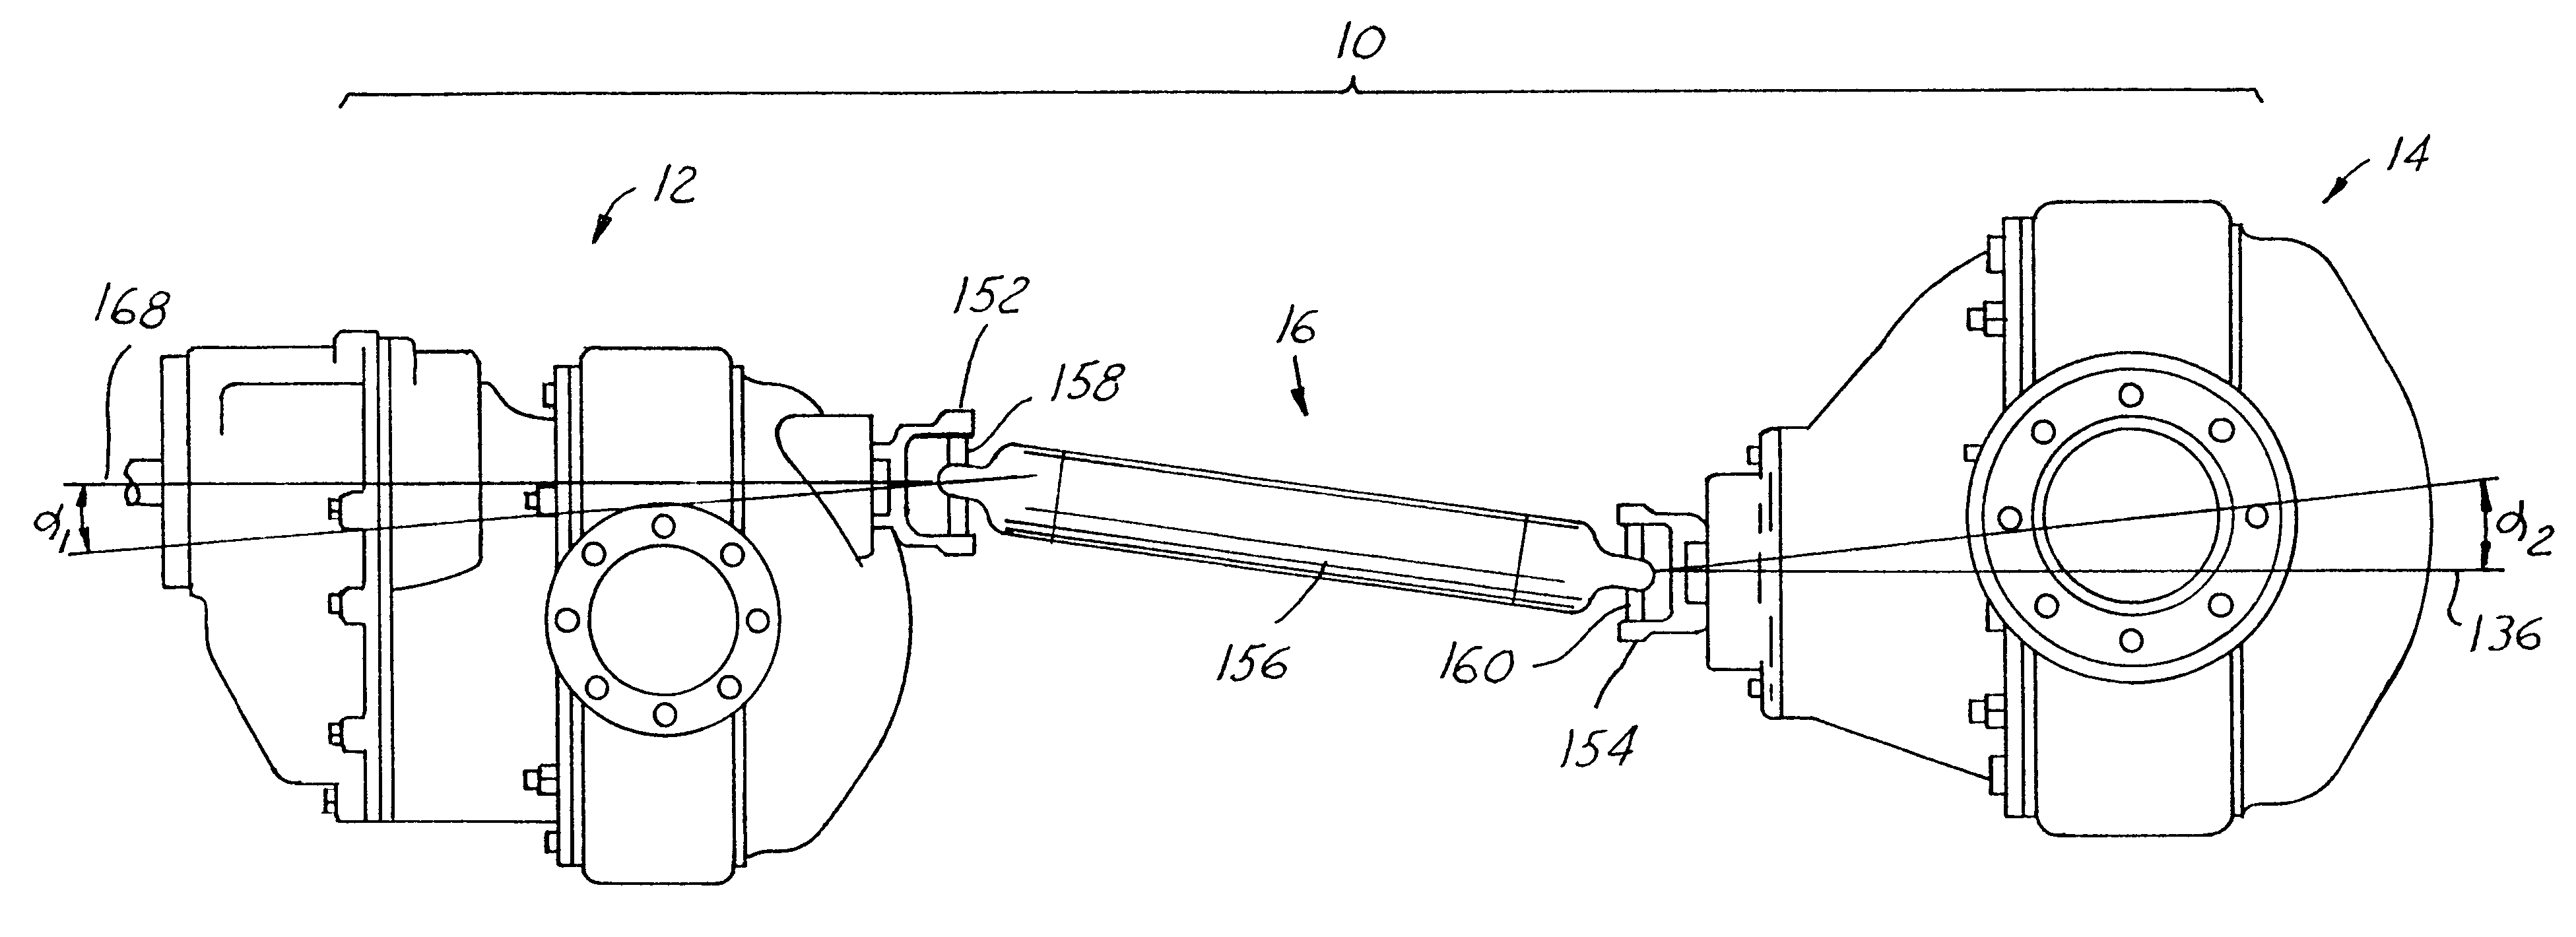 Forwarder Rear Axle : Patent us tandem axle assembly with different